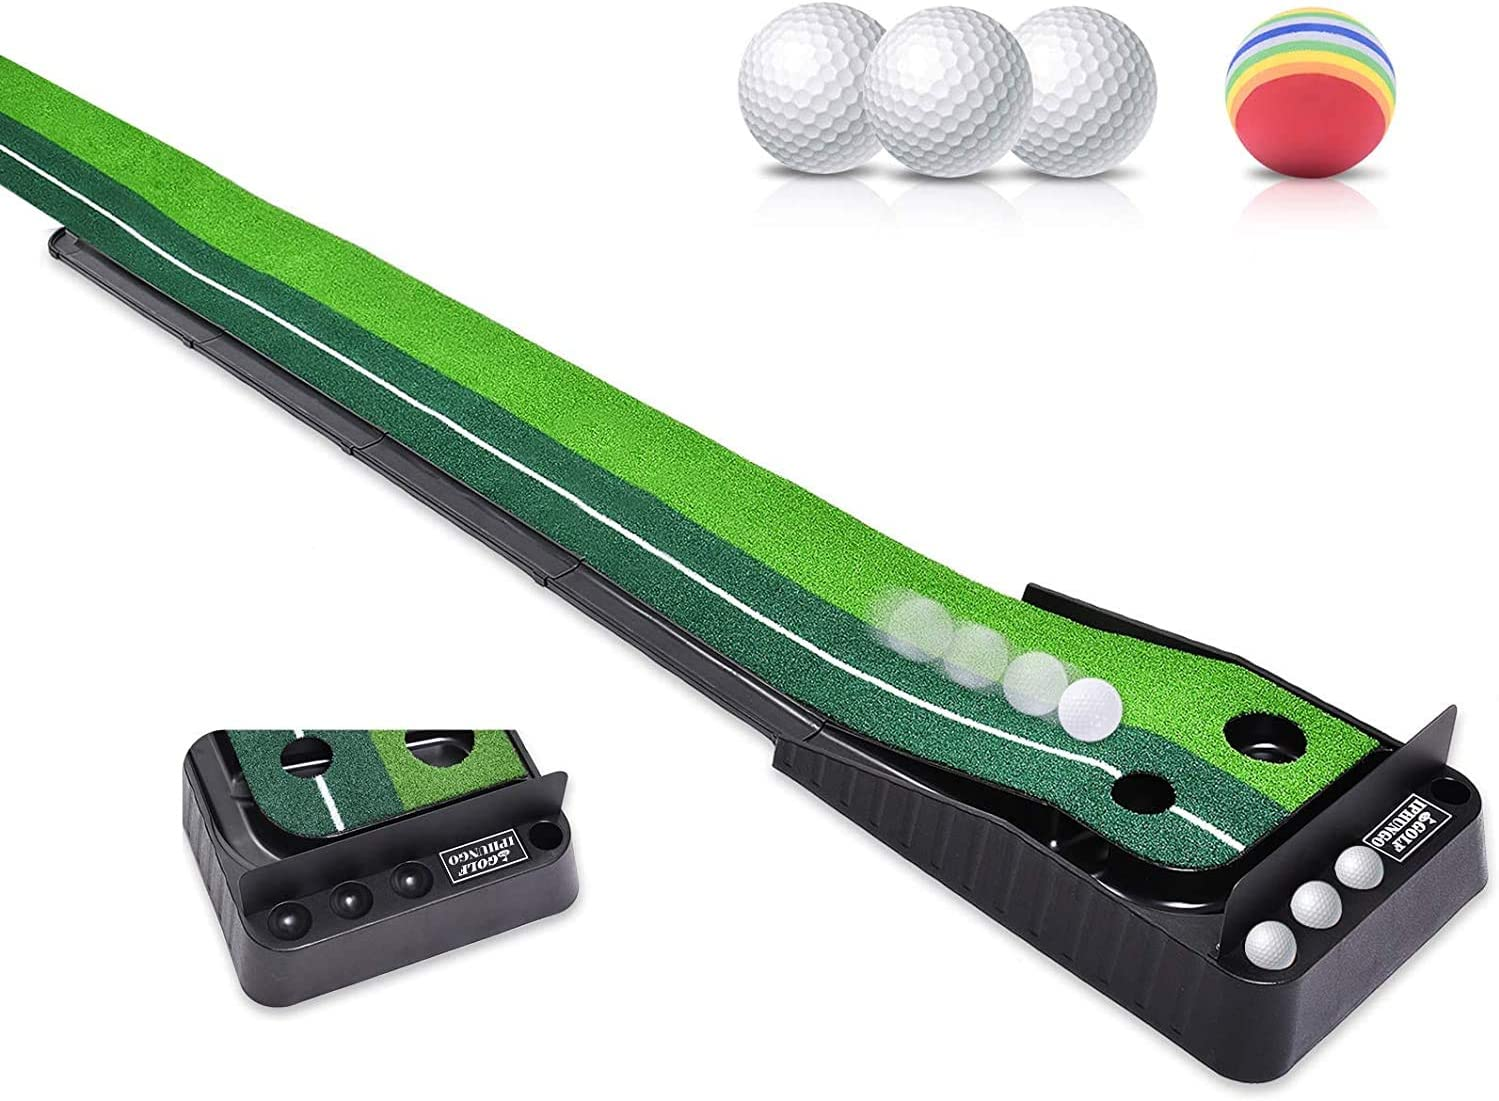 IPHUNGO Indoor Golf Putting Green - Extra Long 9.84Ft Mat with Auto Ball Return Function 2 Holes and 3 Golf Balls 1 Sponge Ball Mini Golf Practice Training Aid, Office,Game,Home, Office, Outdoor Use